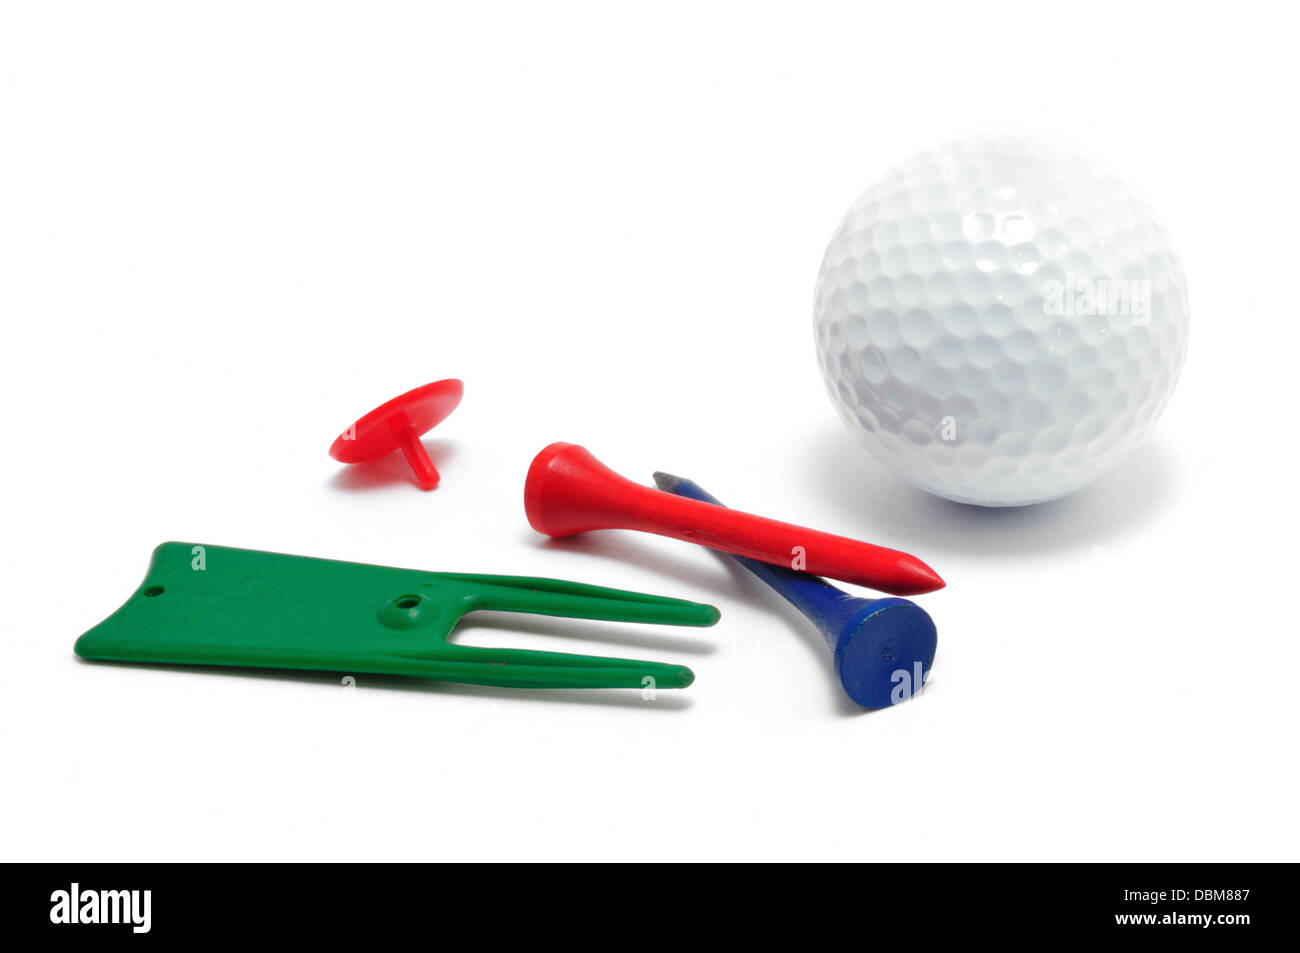 Golf Ball, Tees, Marker, and Divot (Ball Mark) Repair Tool isolated on a white background - Stock Image